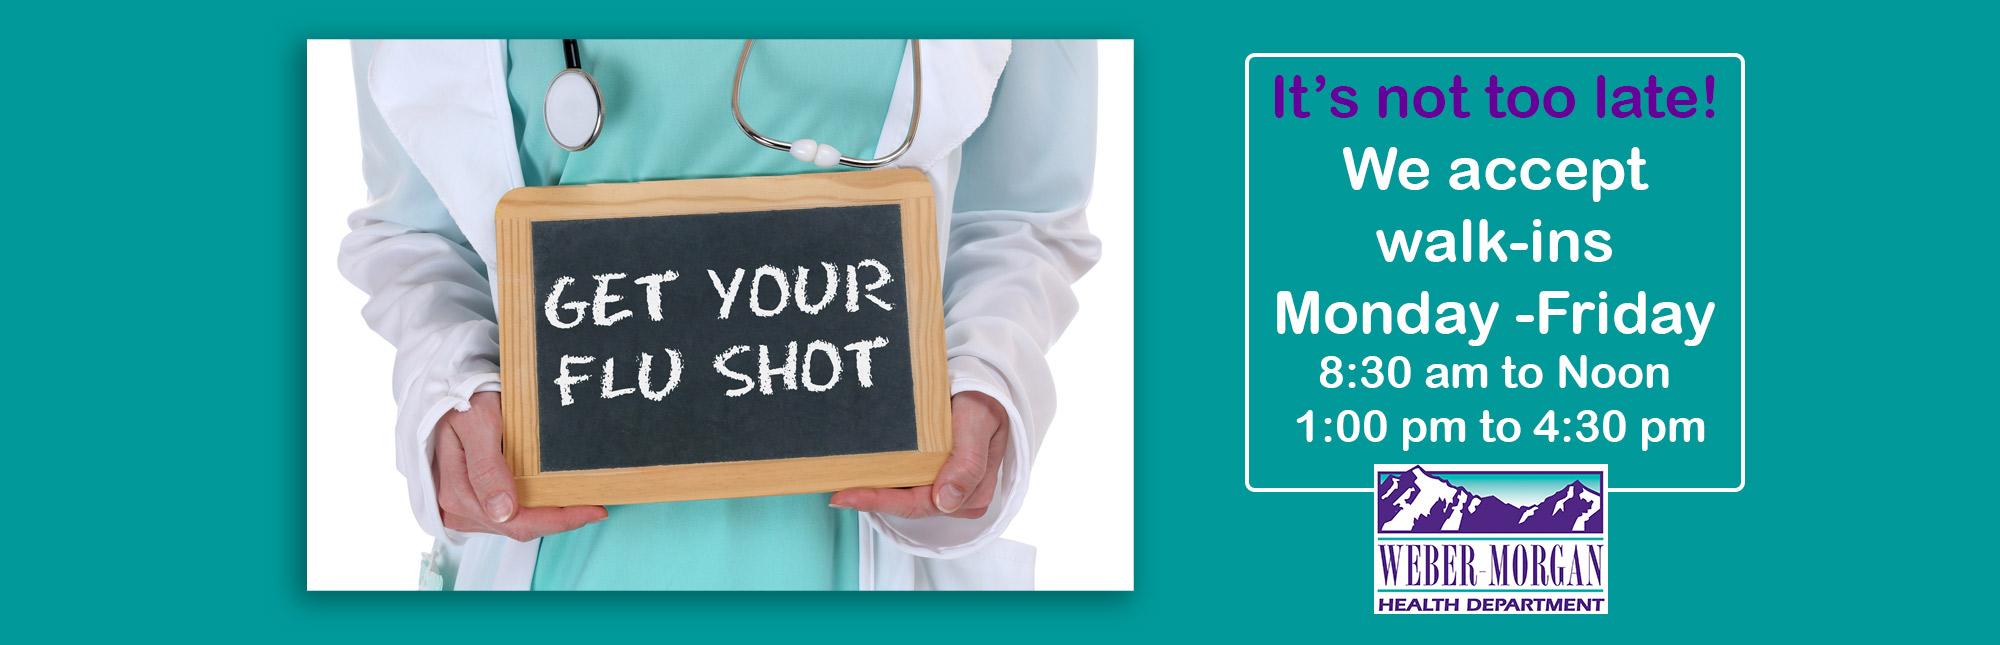 Get Your Flu Shot image